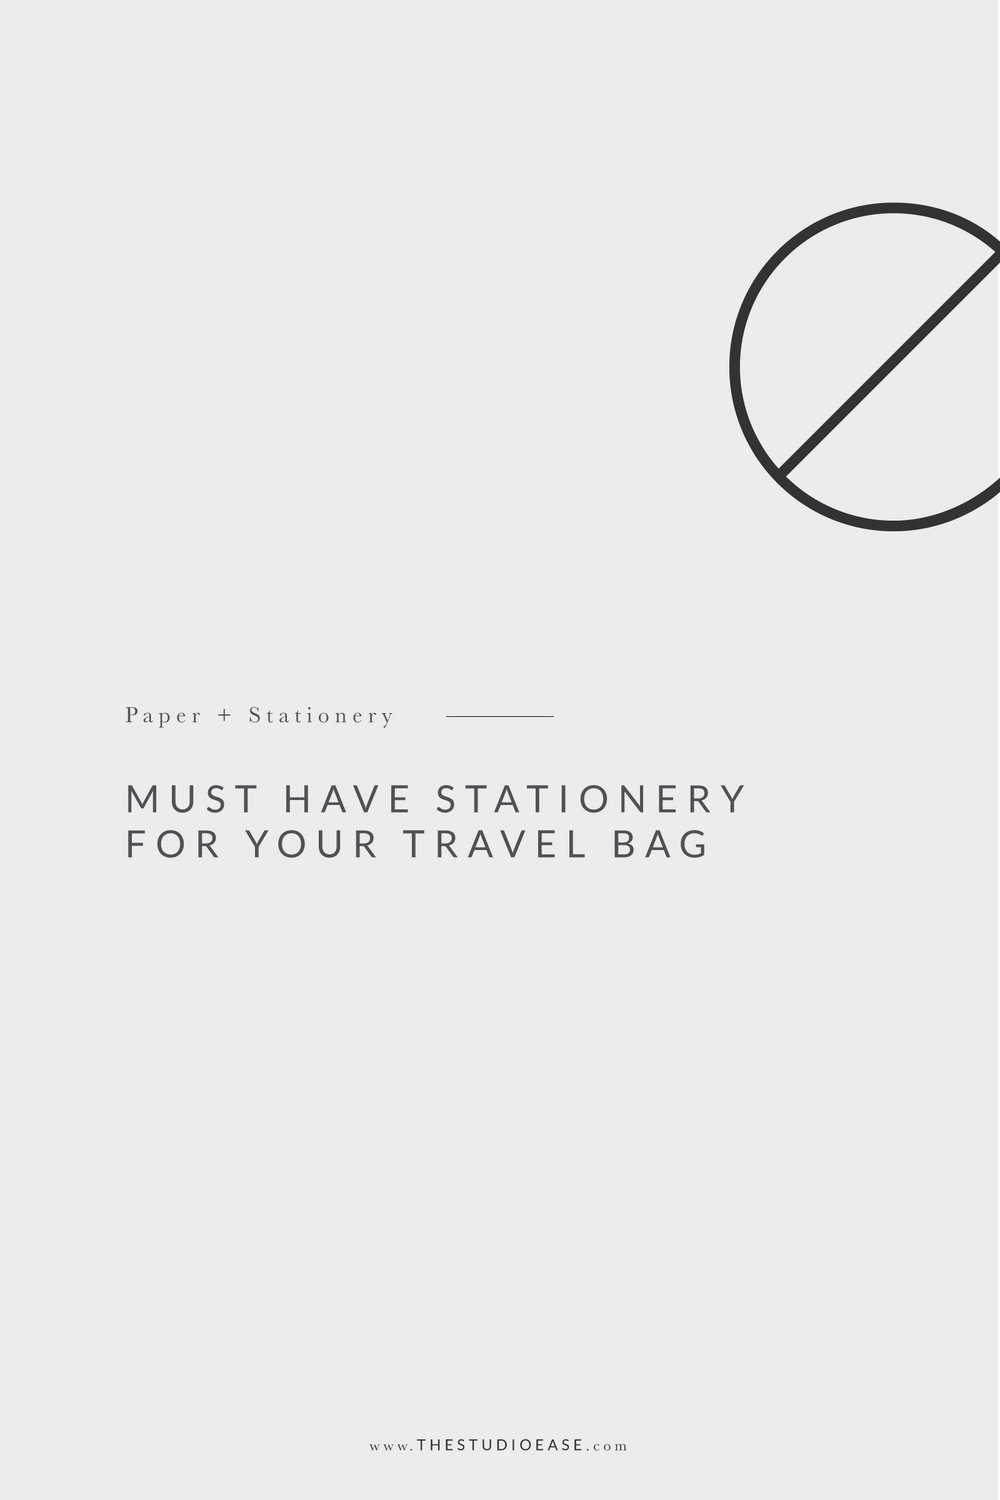 Must Have Stationery for Your Travel Bag by Studio Ease #vacation #travelprep #vacationchecklist vacation planning, vacation checklist, travel ideas, stationery, flat lay